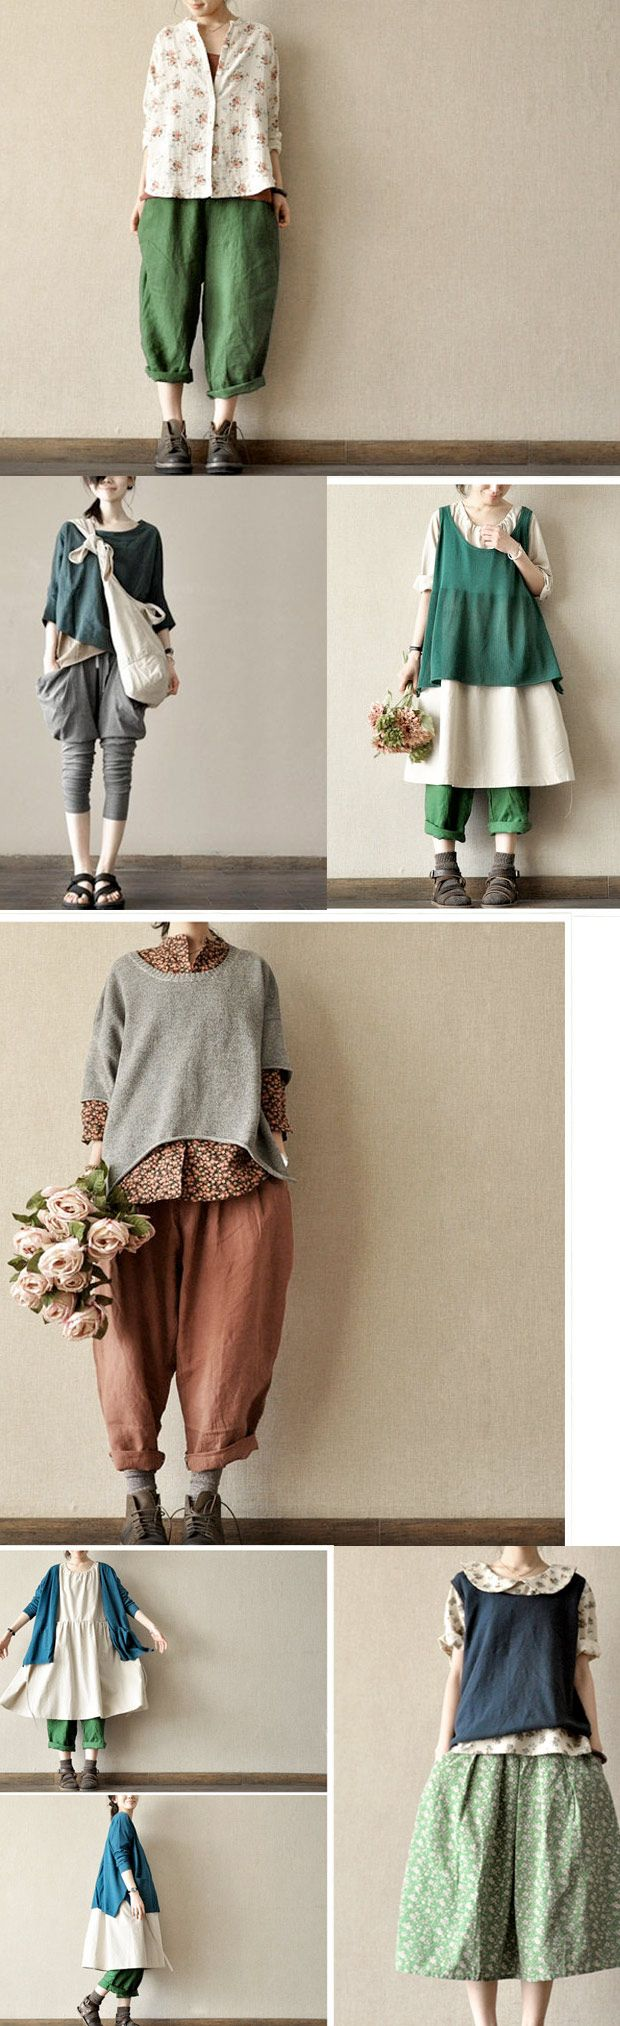 love Japanese style Ive wanted culottes like these but haven't made them